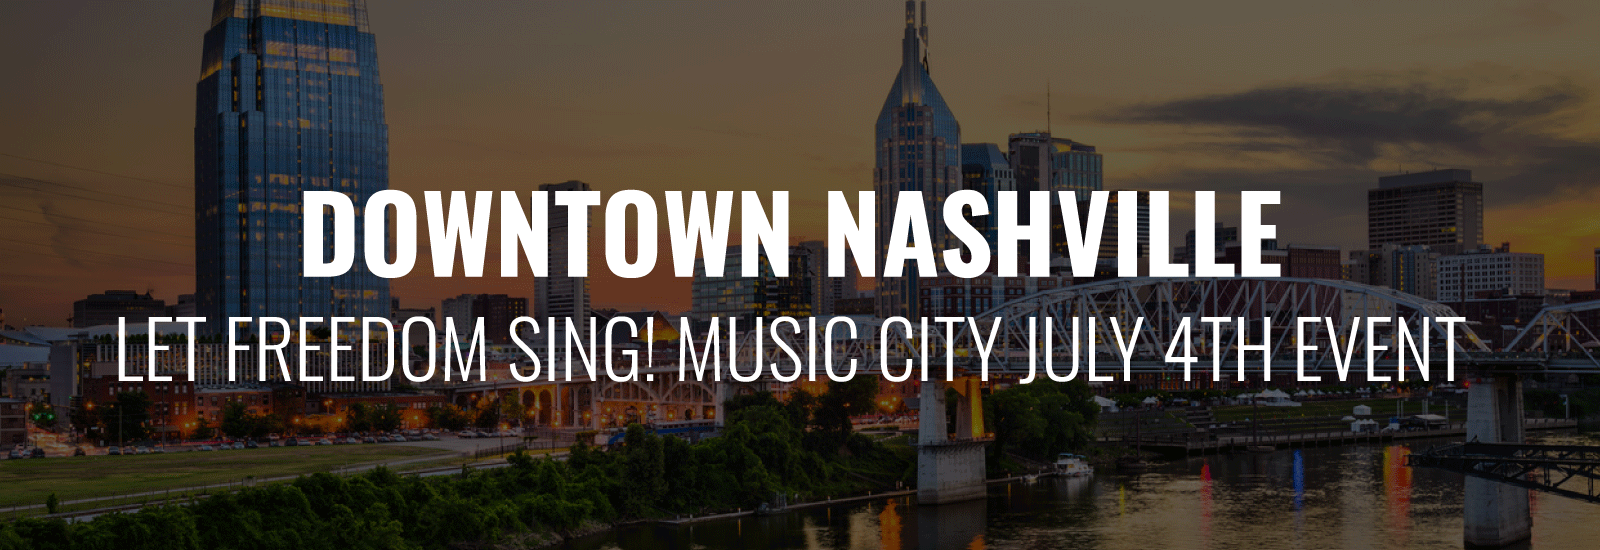 Let Freedom Sing! Music City July 4th event in Downtown Nashville